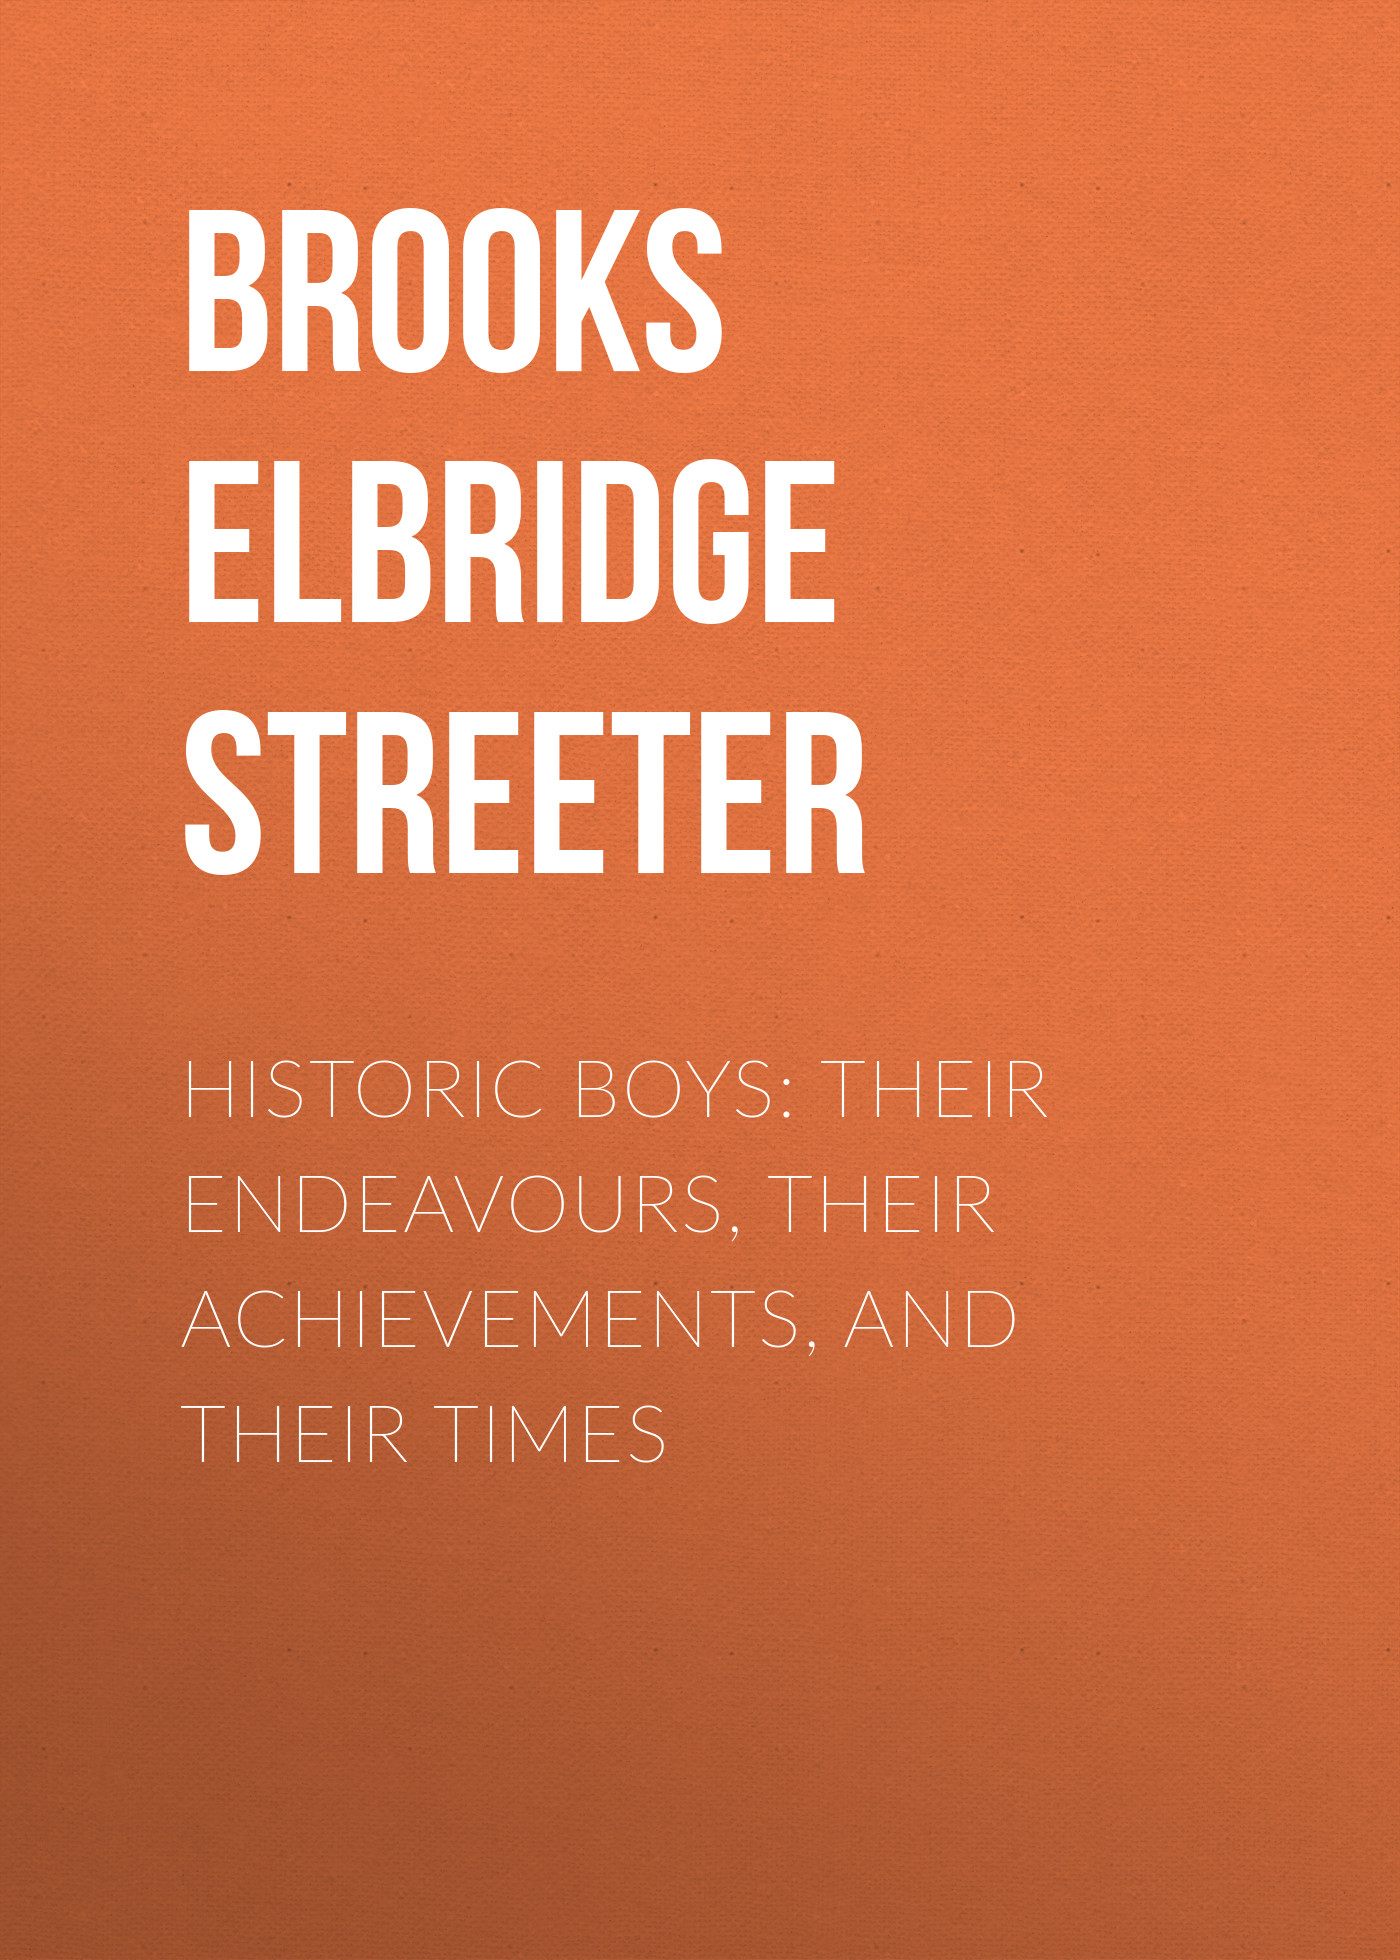 Brooks Elbridge Streeter Historic Boys: Their Endeavours, Their Achievements, and Their Times